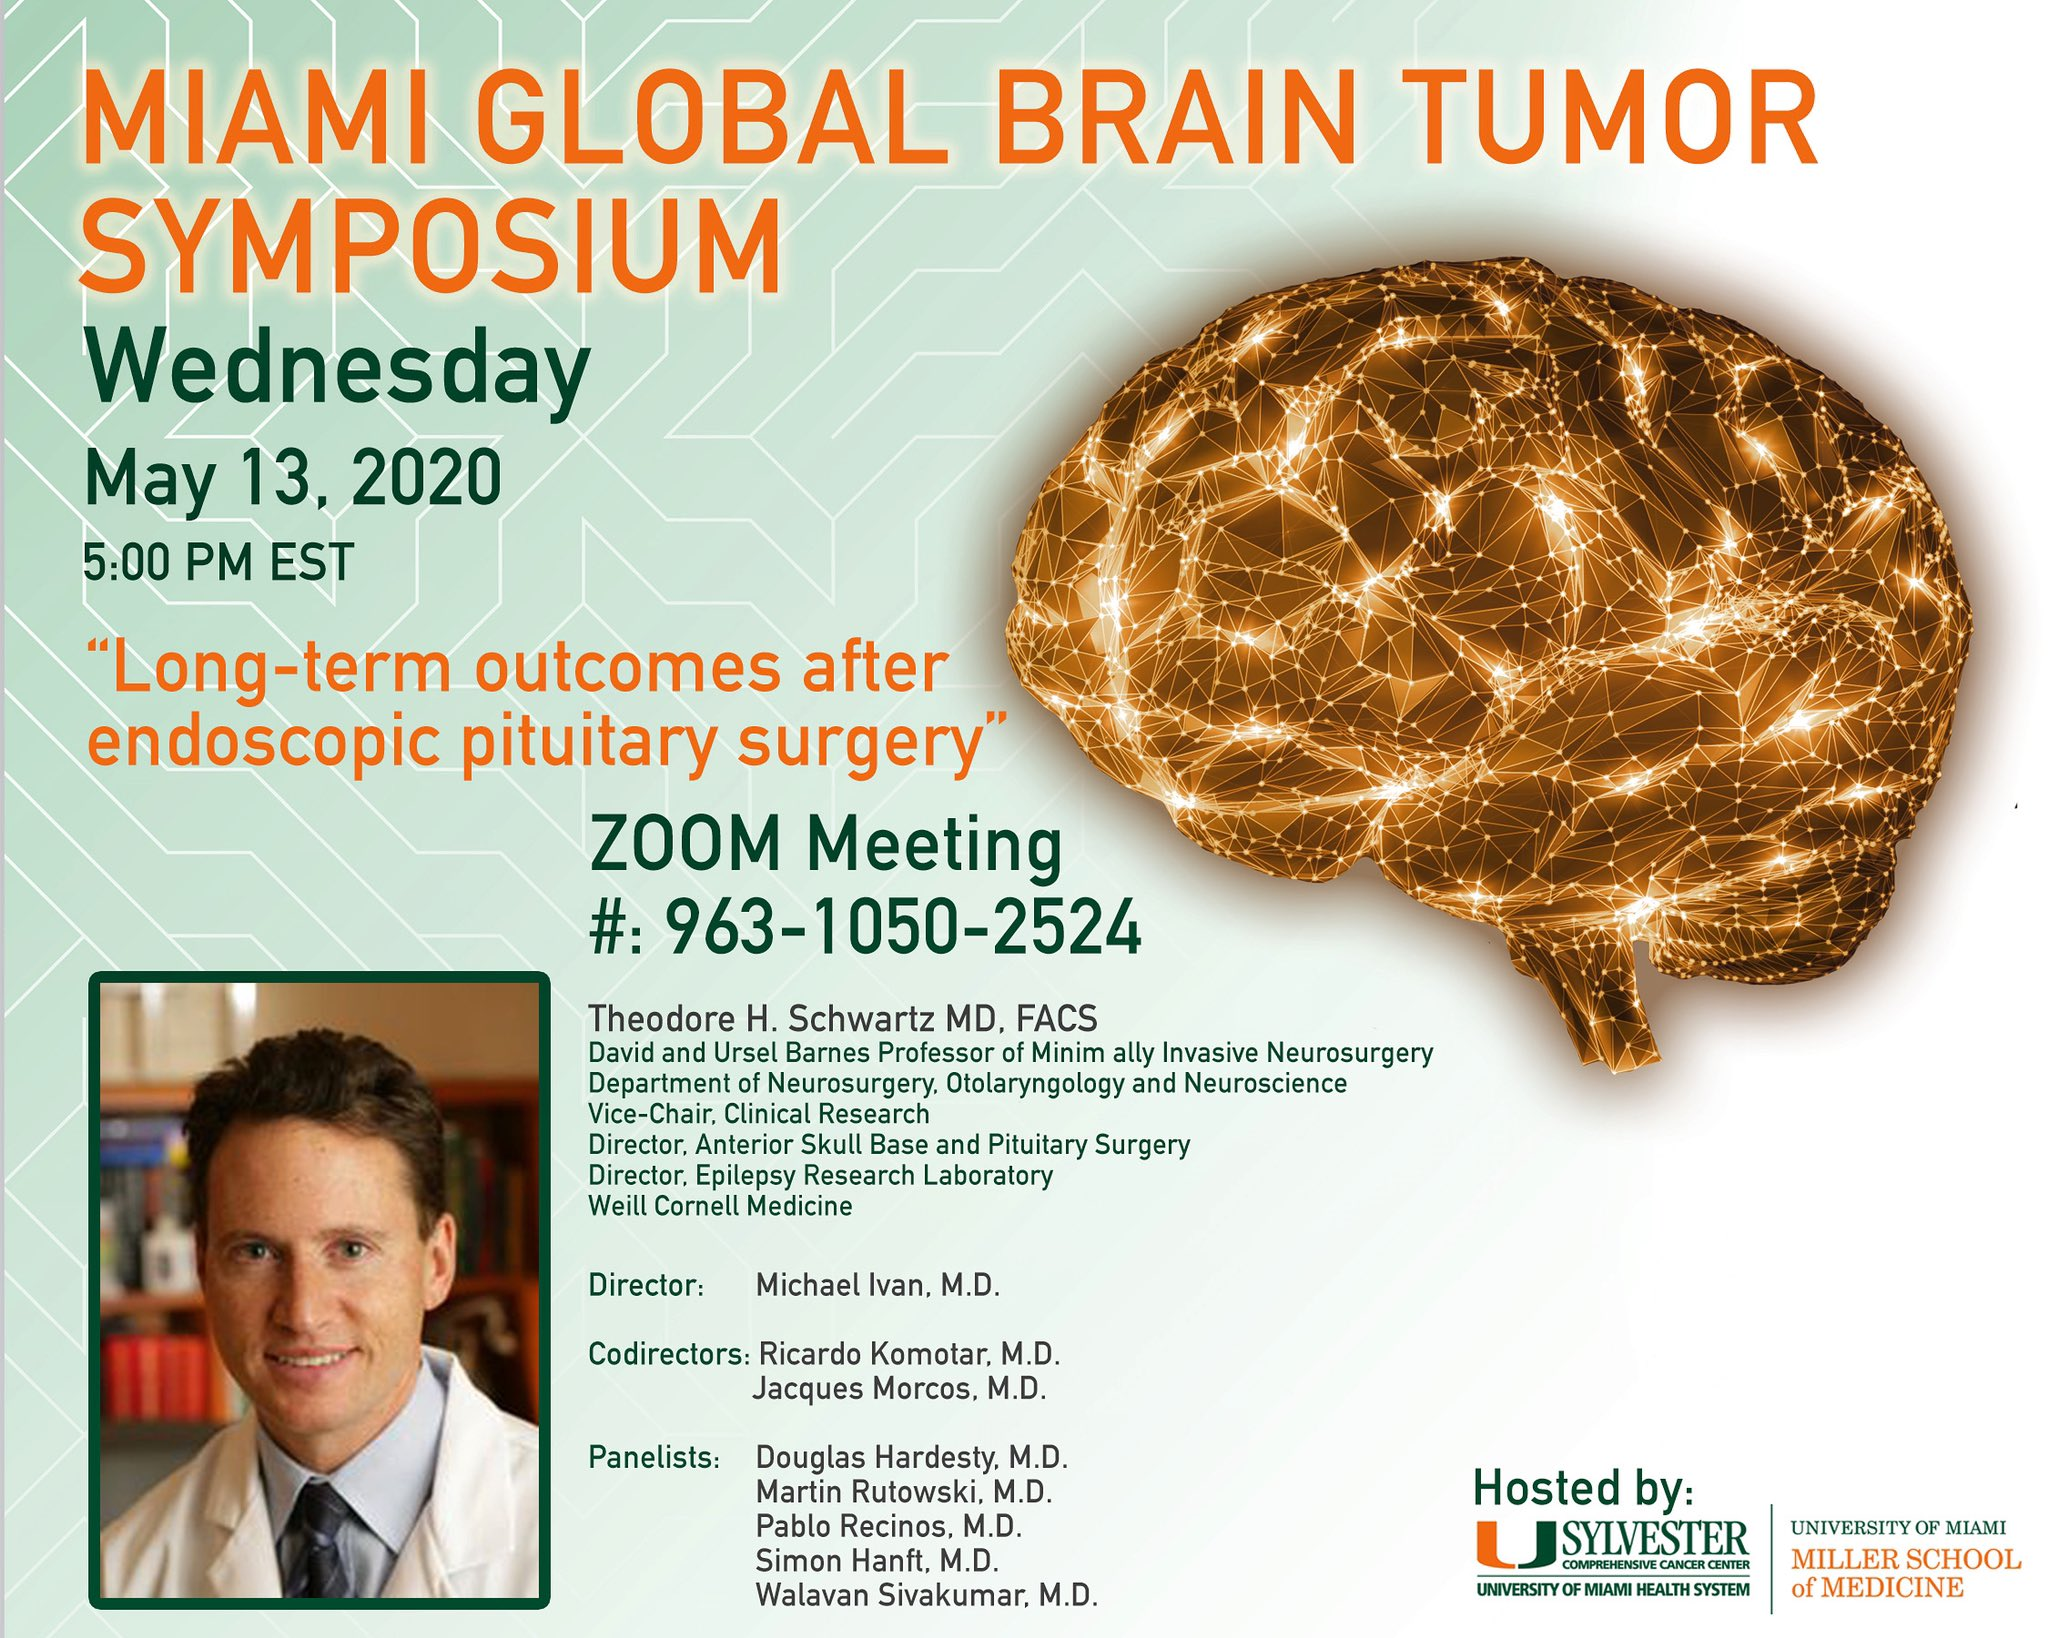 Global Brain Tumor Symposium 2020